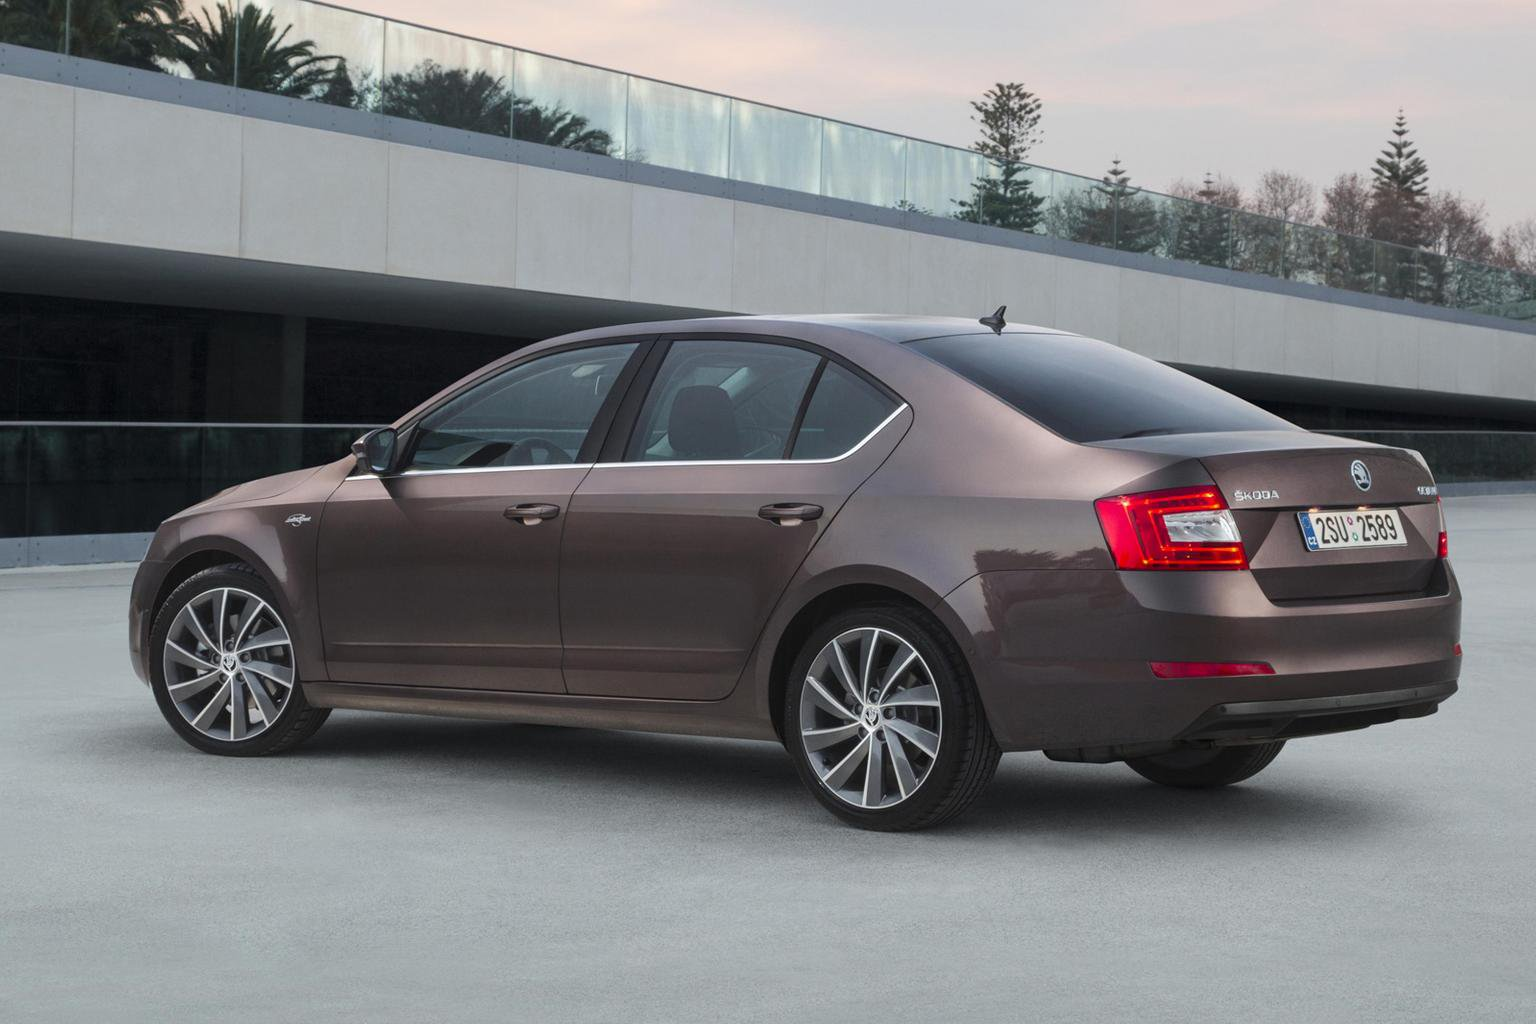 News round-up: top-spec Skoda Octavia on sale, Kia recalls and most powerful Audi R8